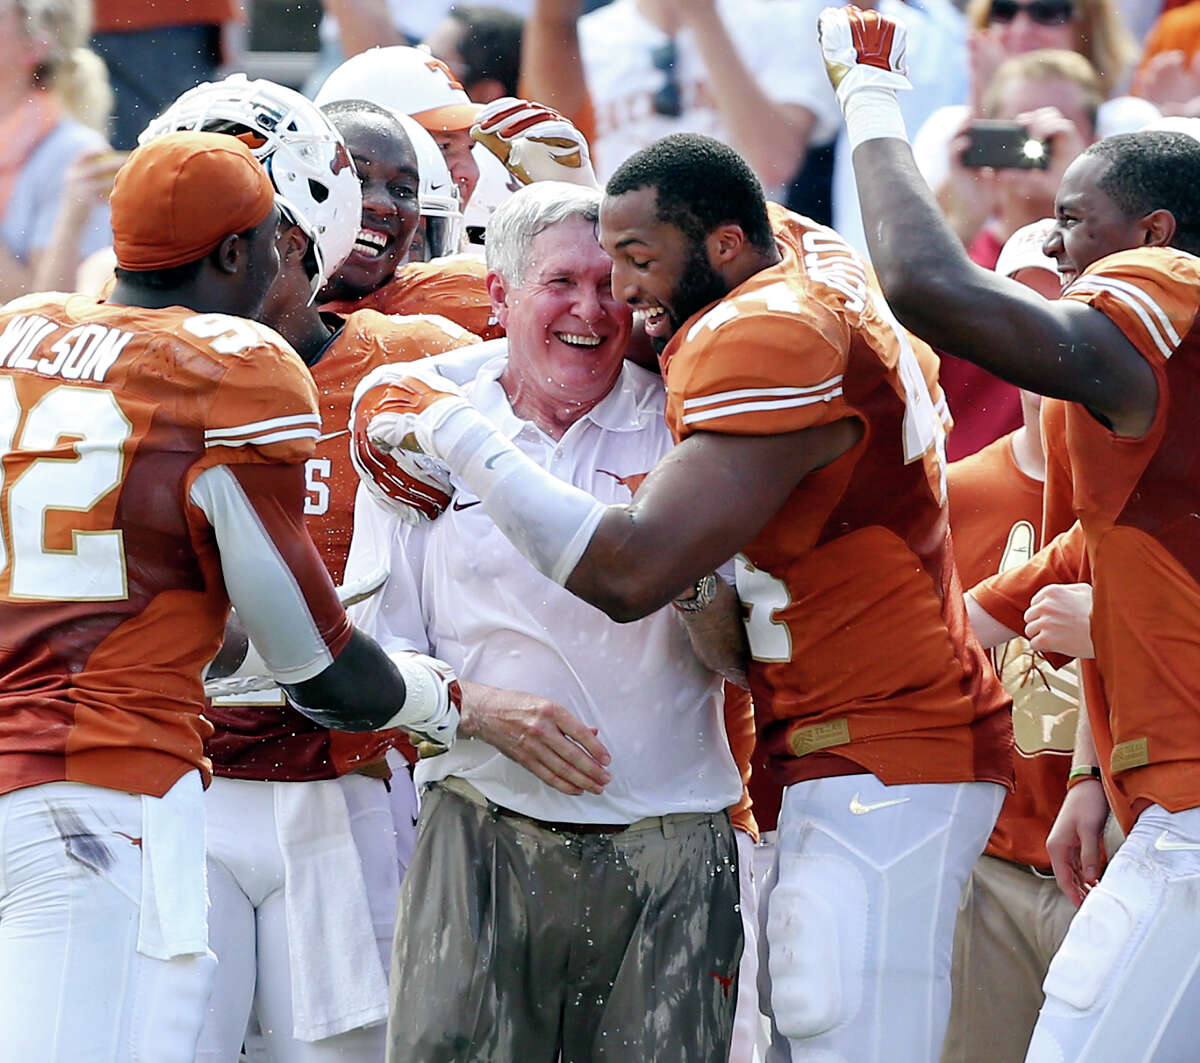 Texas Longhorns' head coach Mack Brown (center) is hugged by Texas Longhorns' Jackson Jeffcoat after being splashed with water near the end of the Red River Rivalry with the Oklahoma Sooners held Saturday Oct. 12, 2013 at Cotton Bowl Stadium in Dallas, Tx. The Longhorns won 36-20.